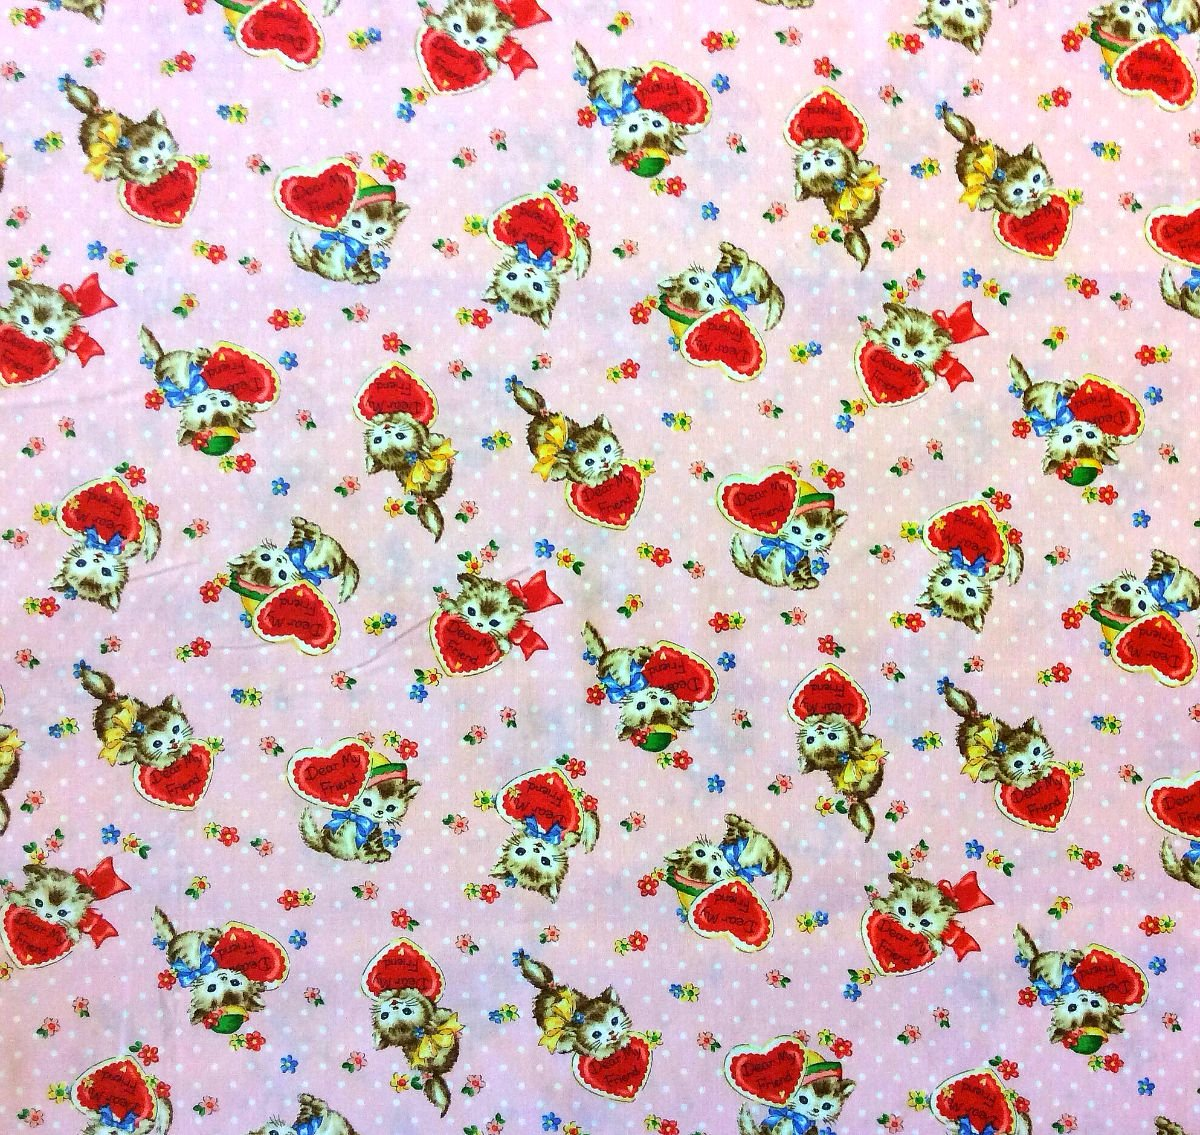 Cat Lover Cute Kitten Love Friendship Hearts Floral Quilting Cotton Fabric NT17